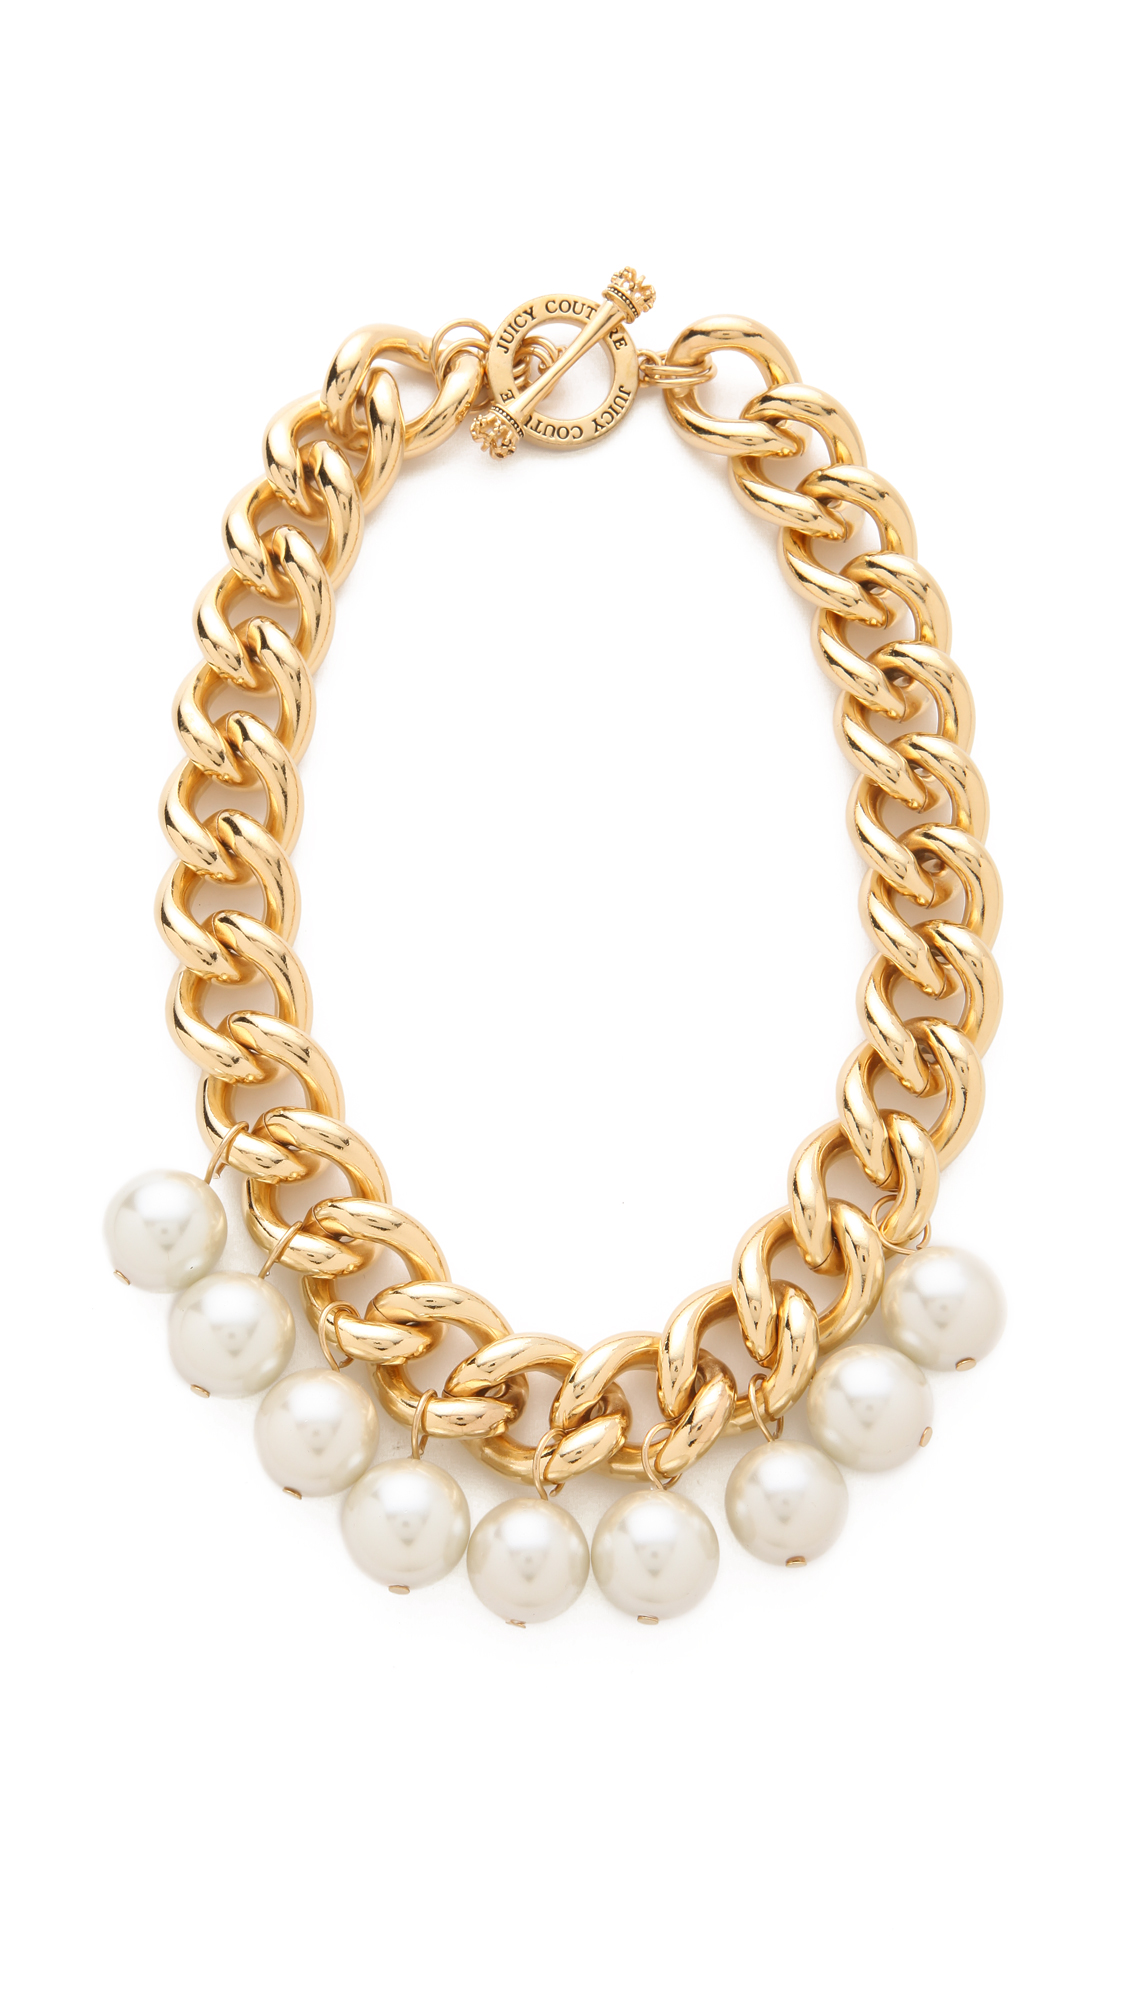 Juicy couture chunky chain necklace in metallic lyst for Juicy couture jewelry necklace